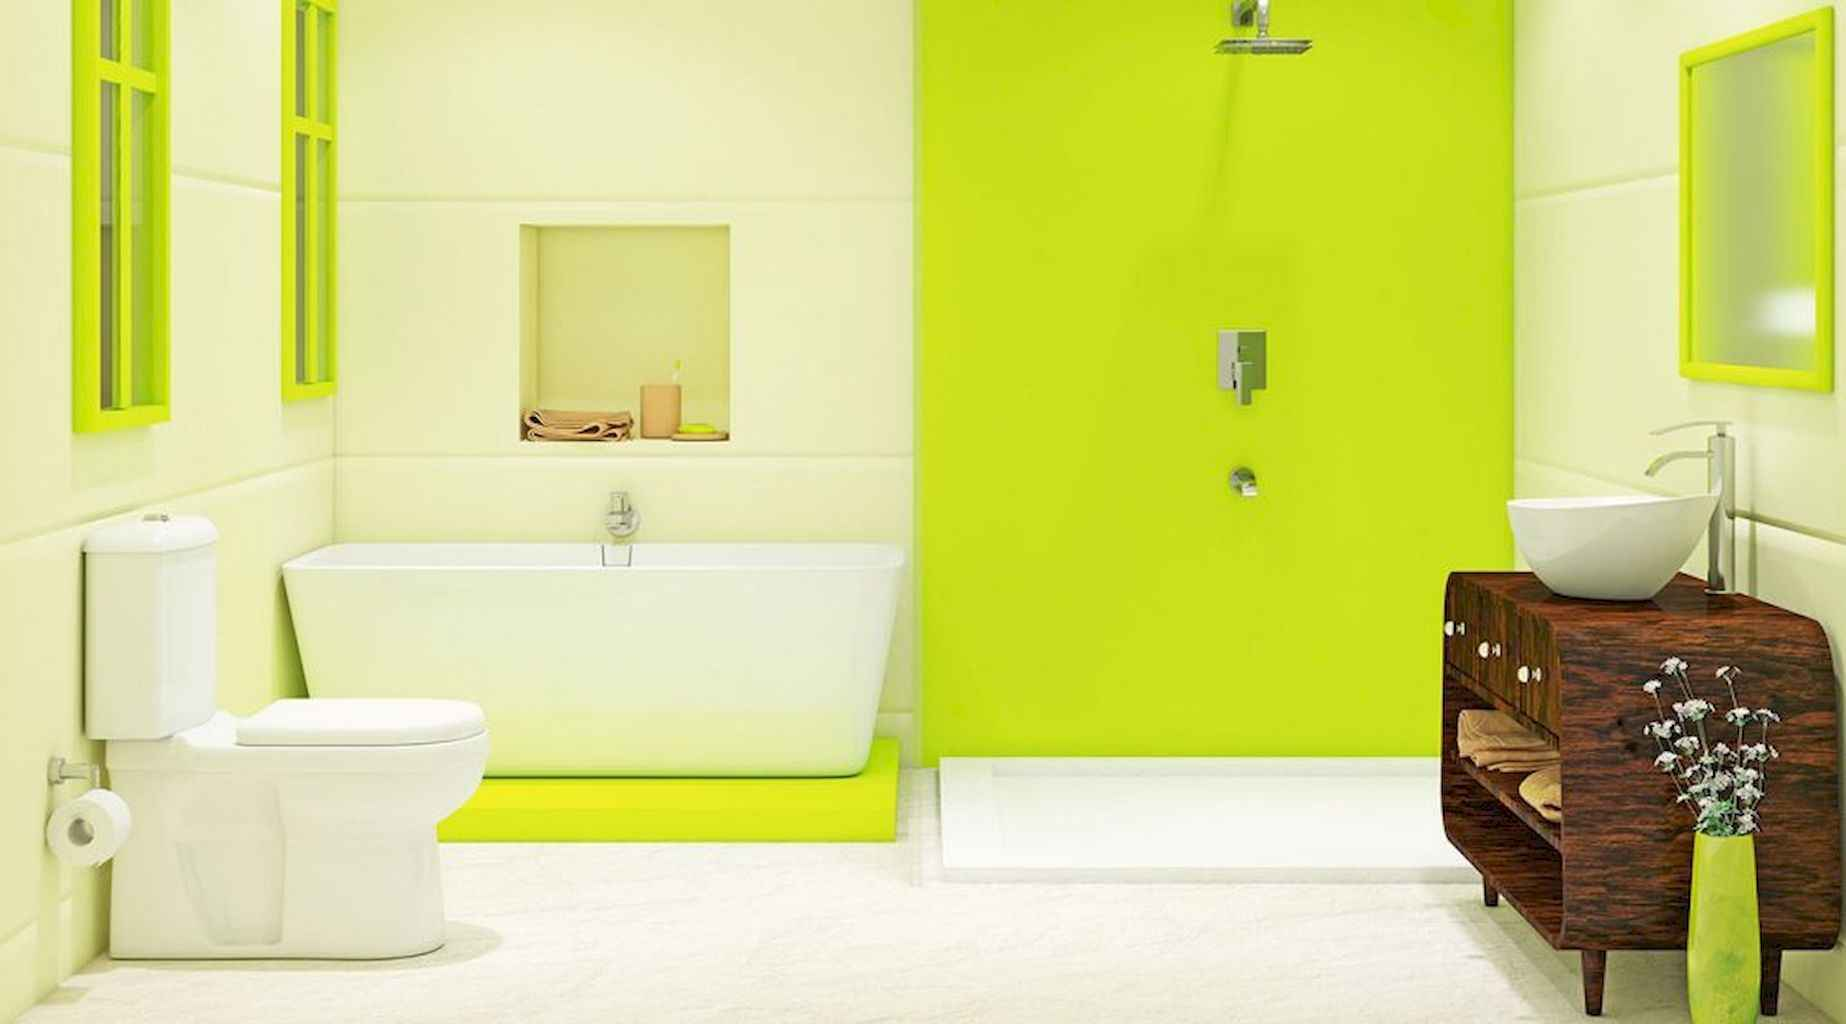 55 cool and relax bathroom design ideas (35)